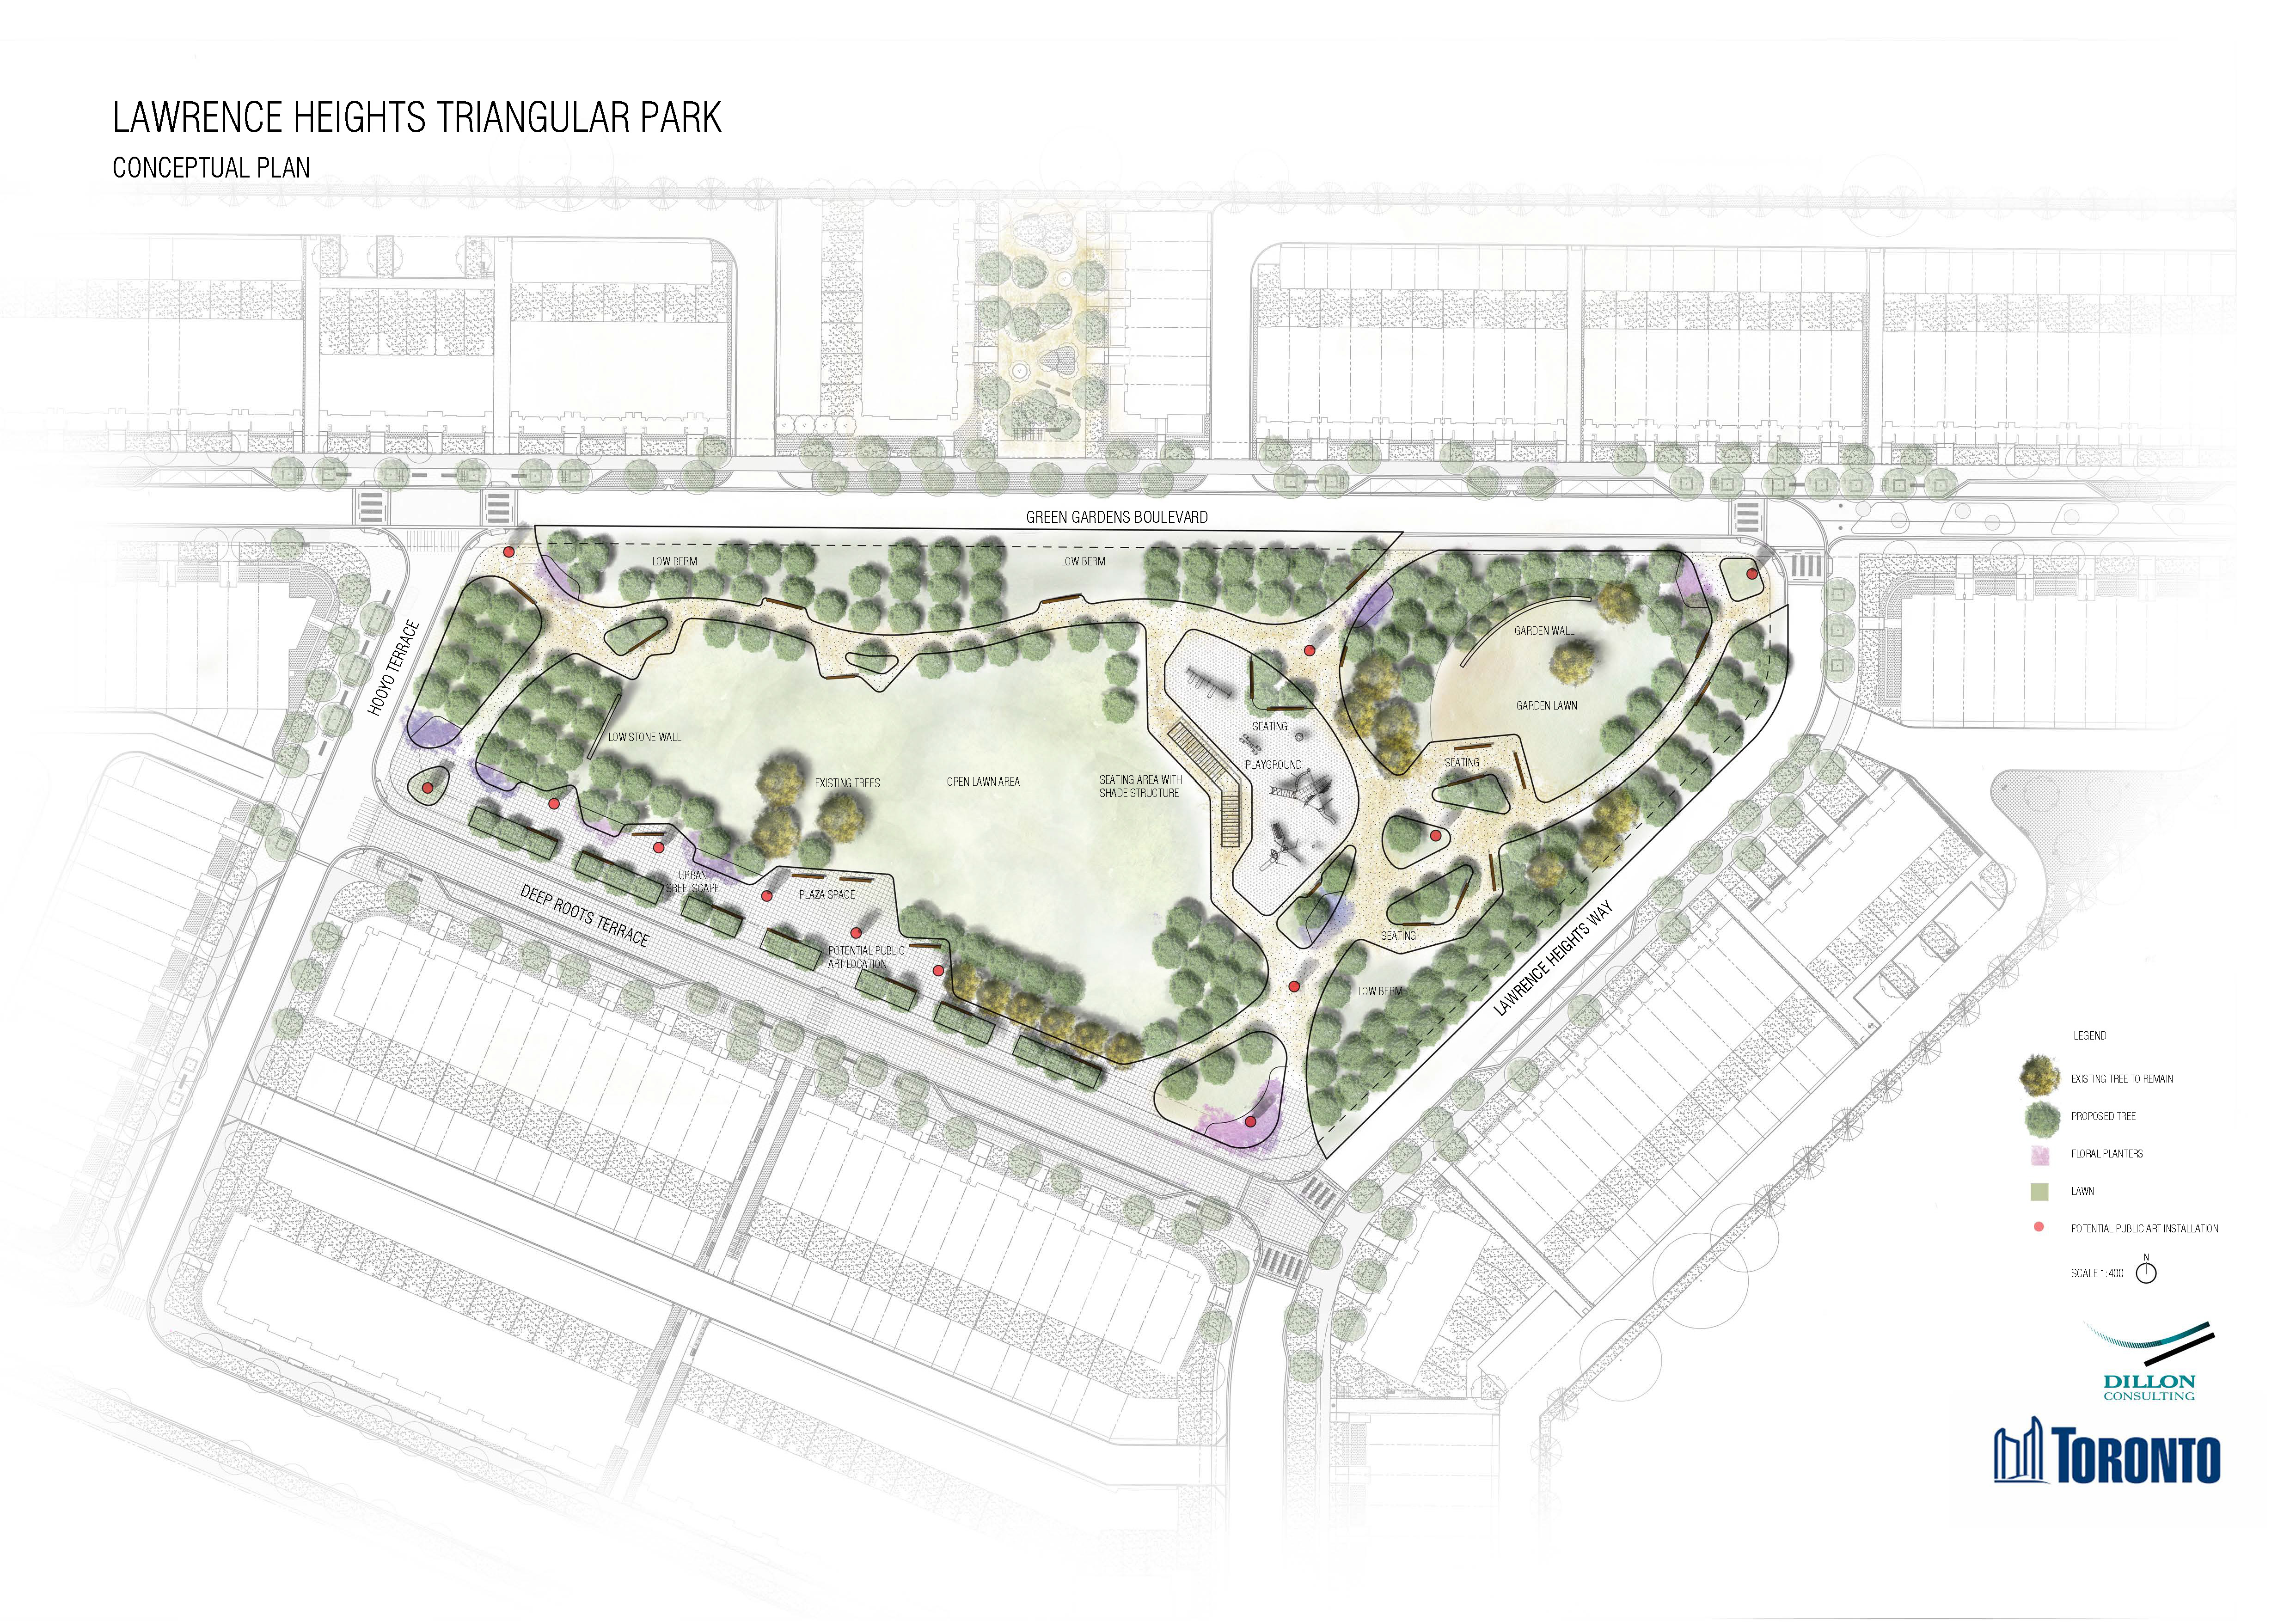 The map shows an illustration of Triangular Park from an aerial view. The park is bordered by Green Gardens Boulevard, Lawrence Heights Way, Deep Roots Terrace and Hooyo Terrace. The concept map shows park entrances at all four corners of the park with pathways connecting the entrances at a central point in the park that includes a playground, seating and shade structure. The north east corner of the park features a garden with a garden wall, and the west side of the park features an open green space. Trees, shrubs and other plantings border the park on all sides.